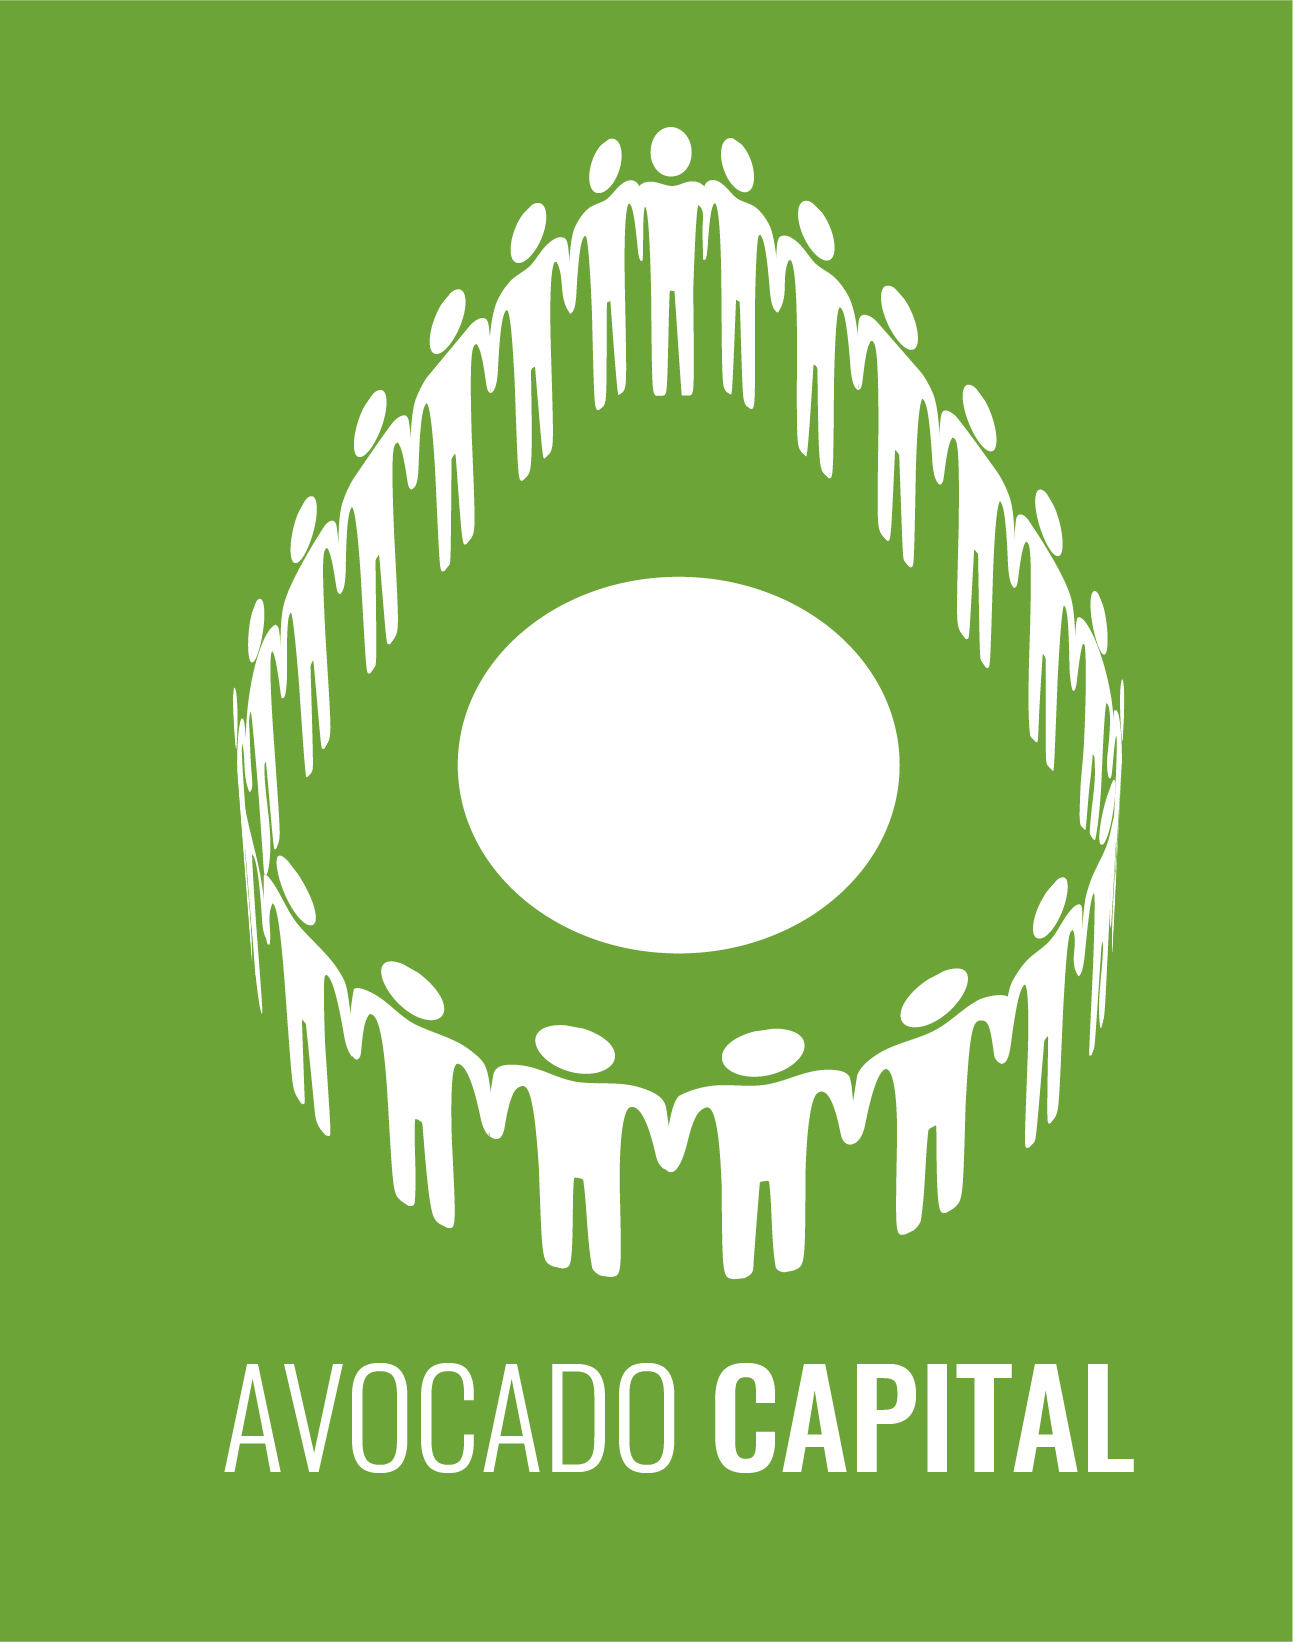 Avocado Capital - Creatively sourcing capital to help companies make a difference